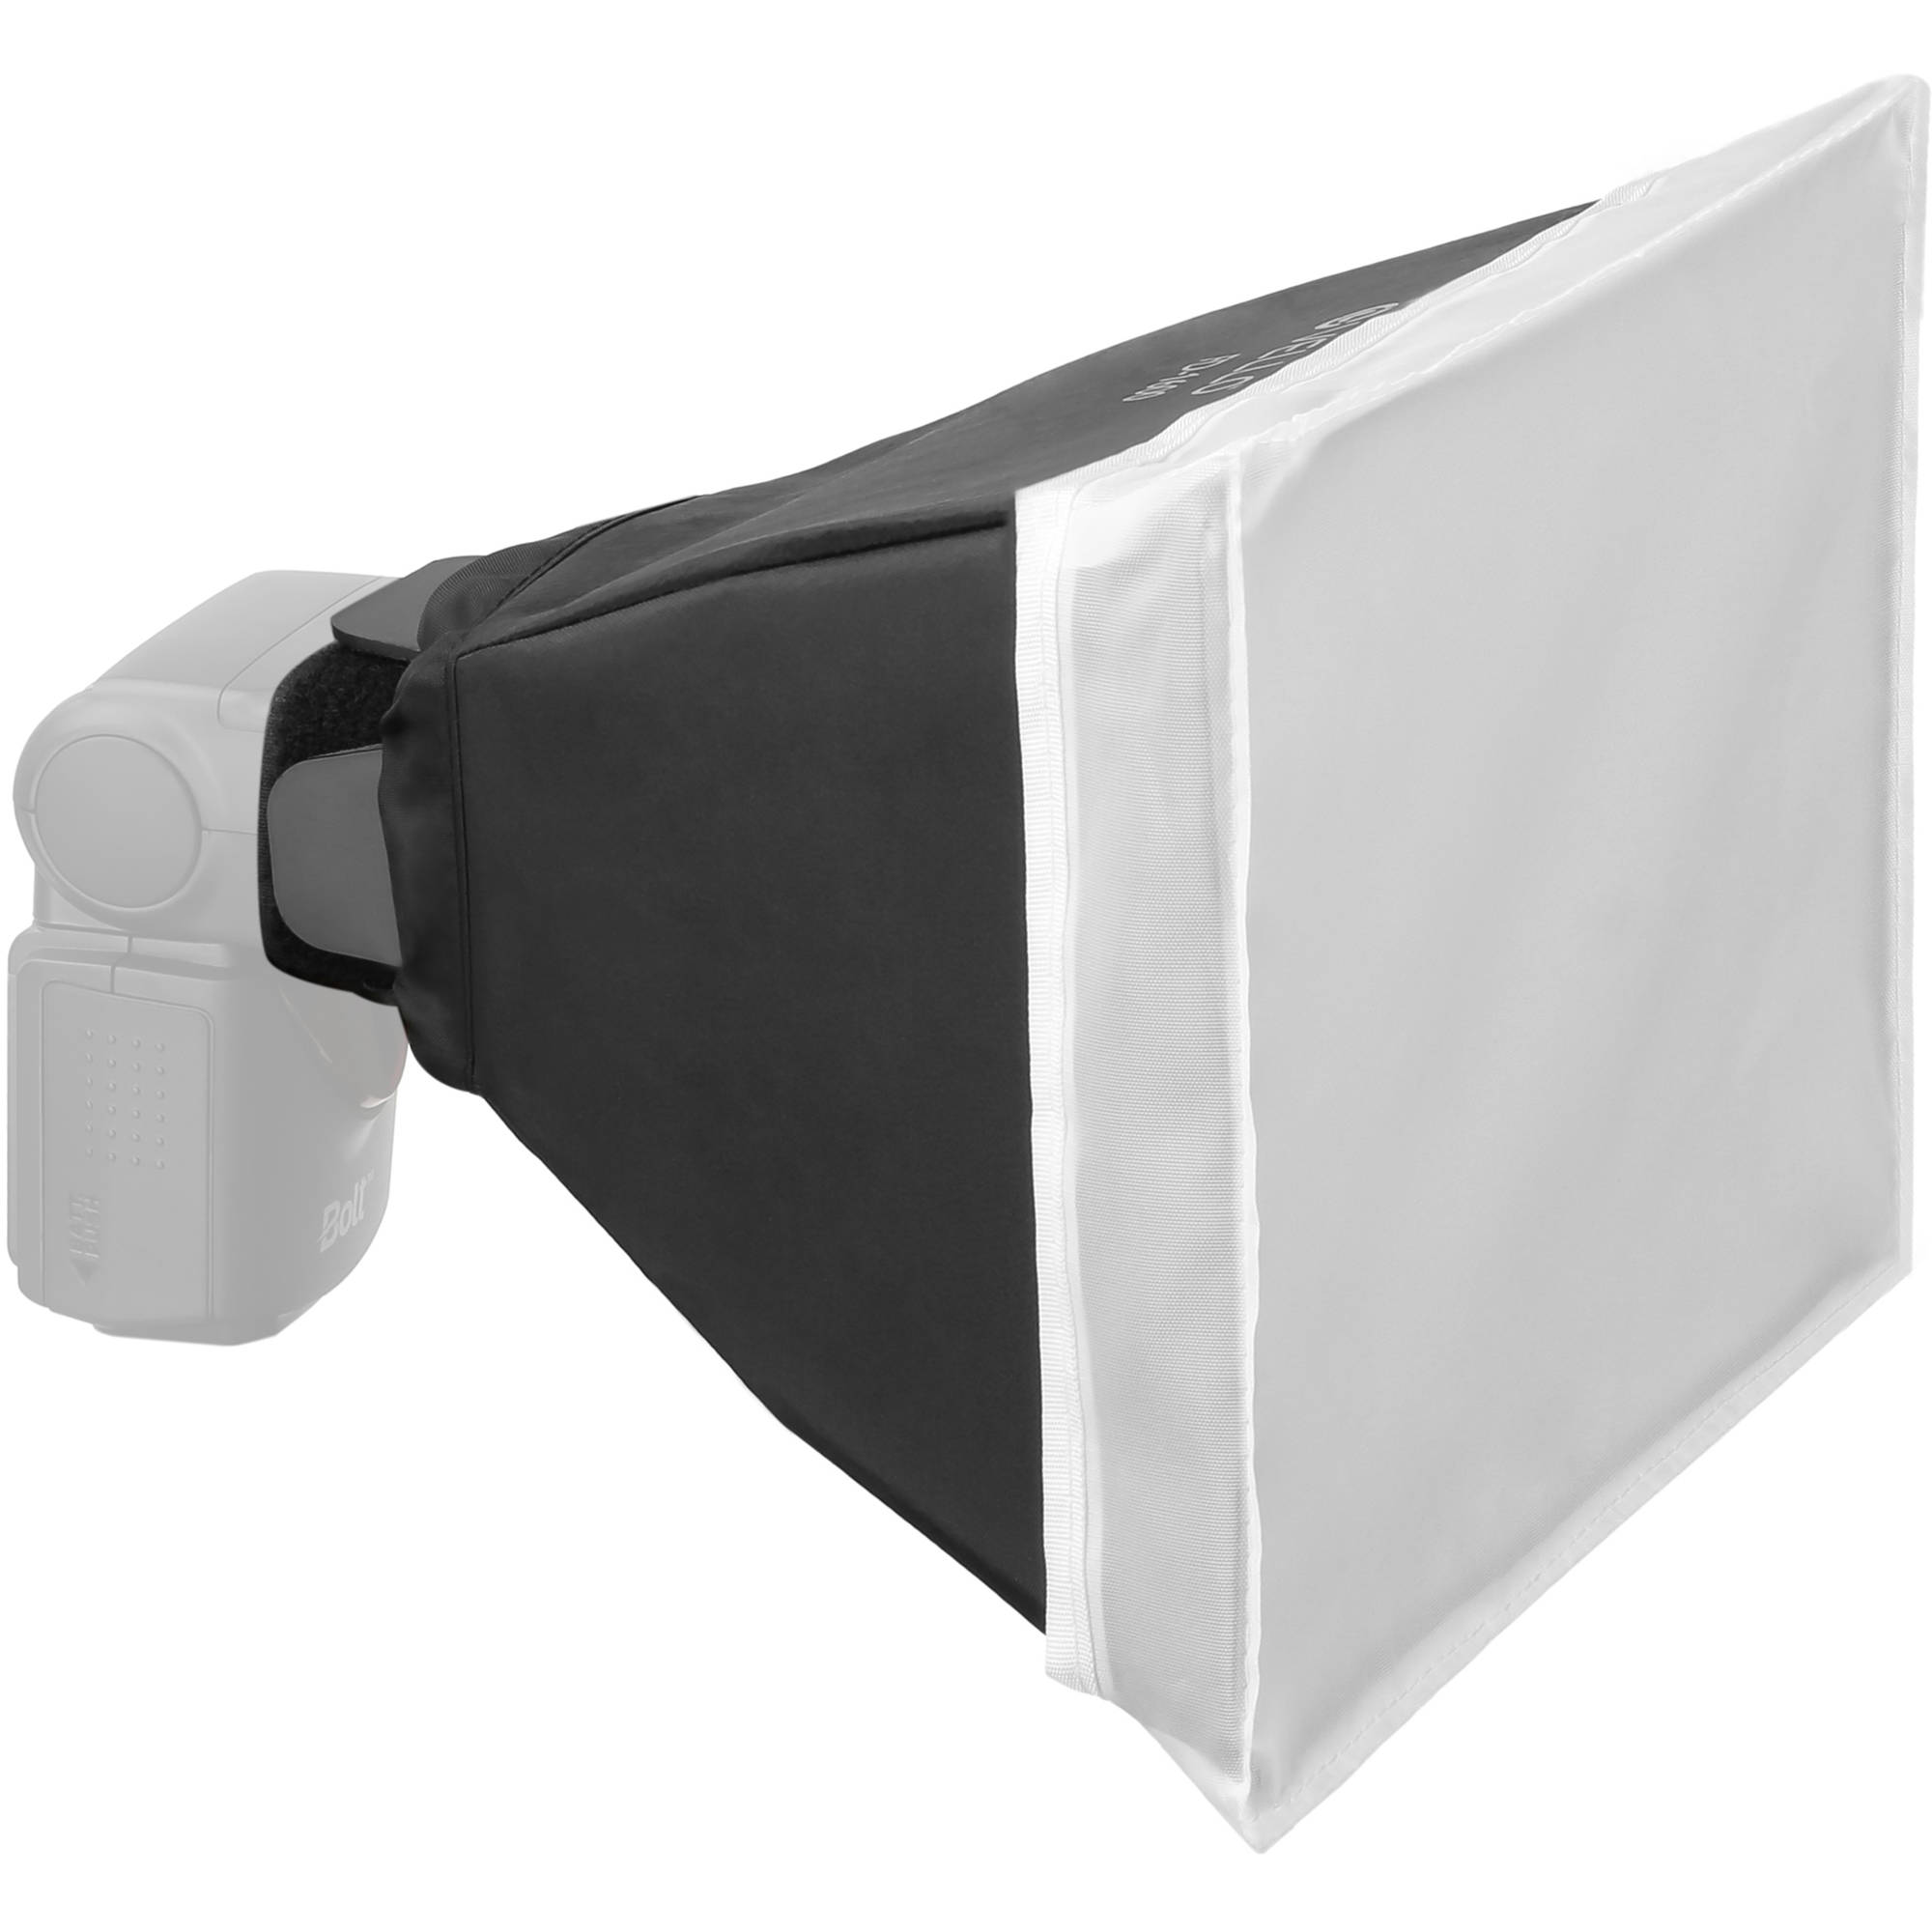 Vello Flexframe Softbox For Portable Flash 8 X 12 Step By Hacking A Disposable Camera Unit To Power Geiger